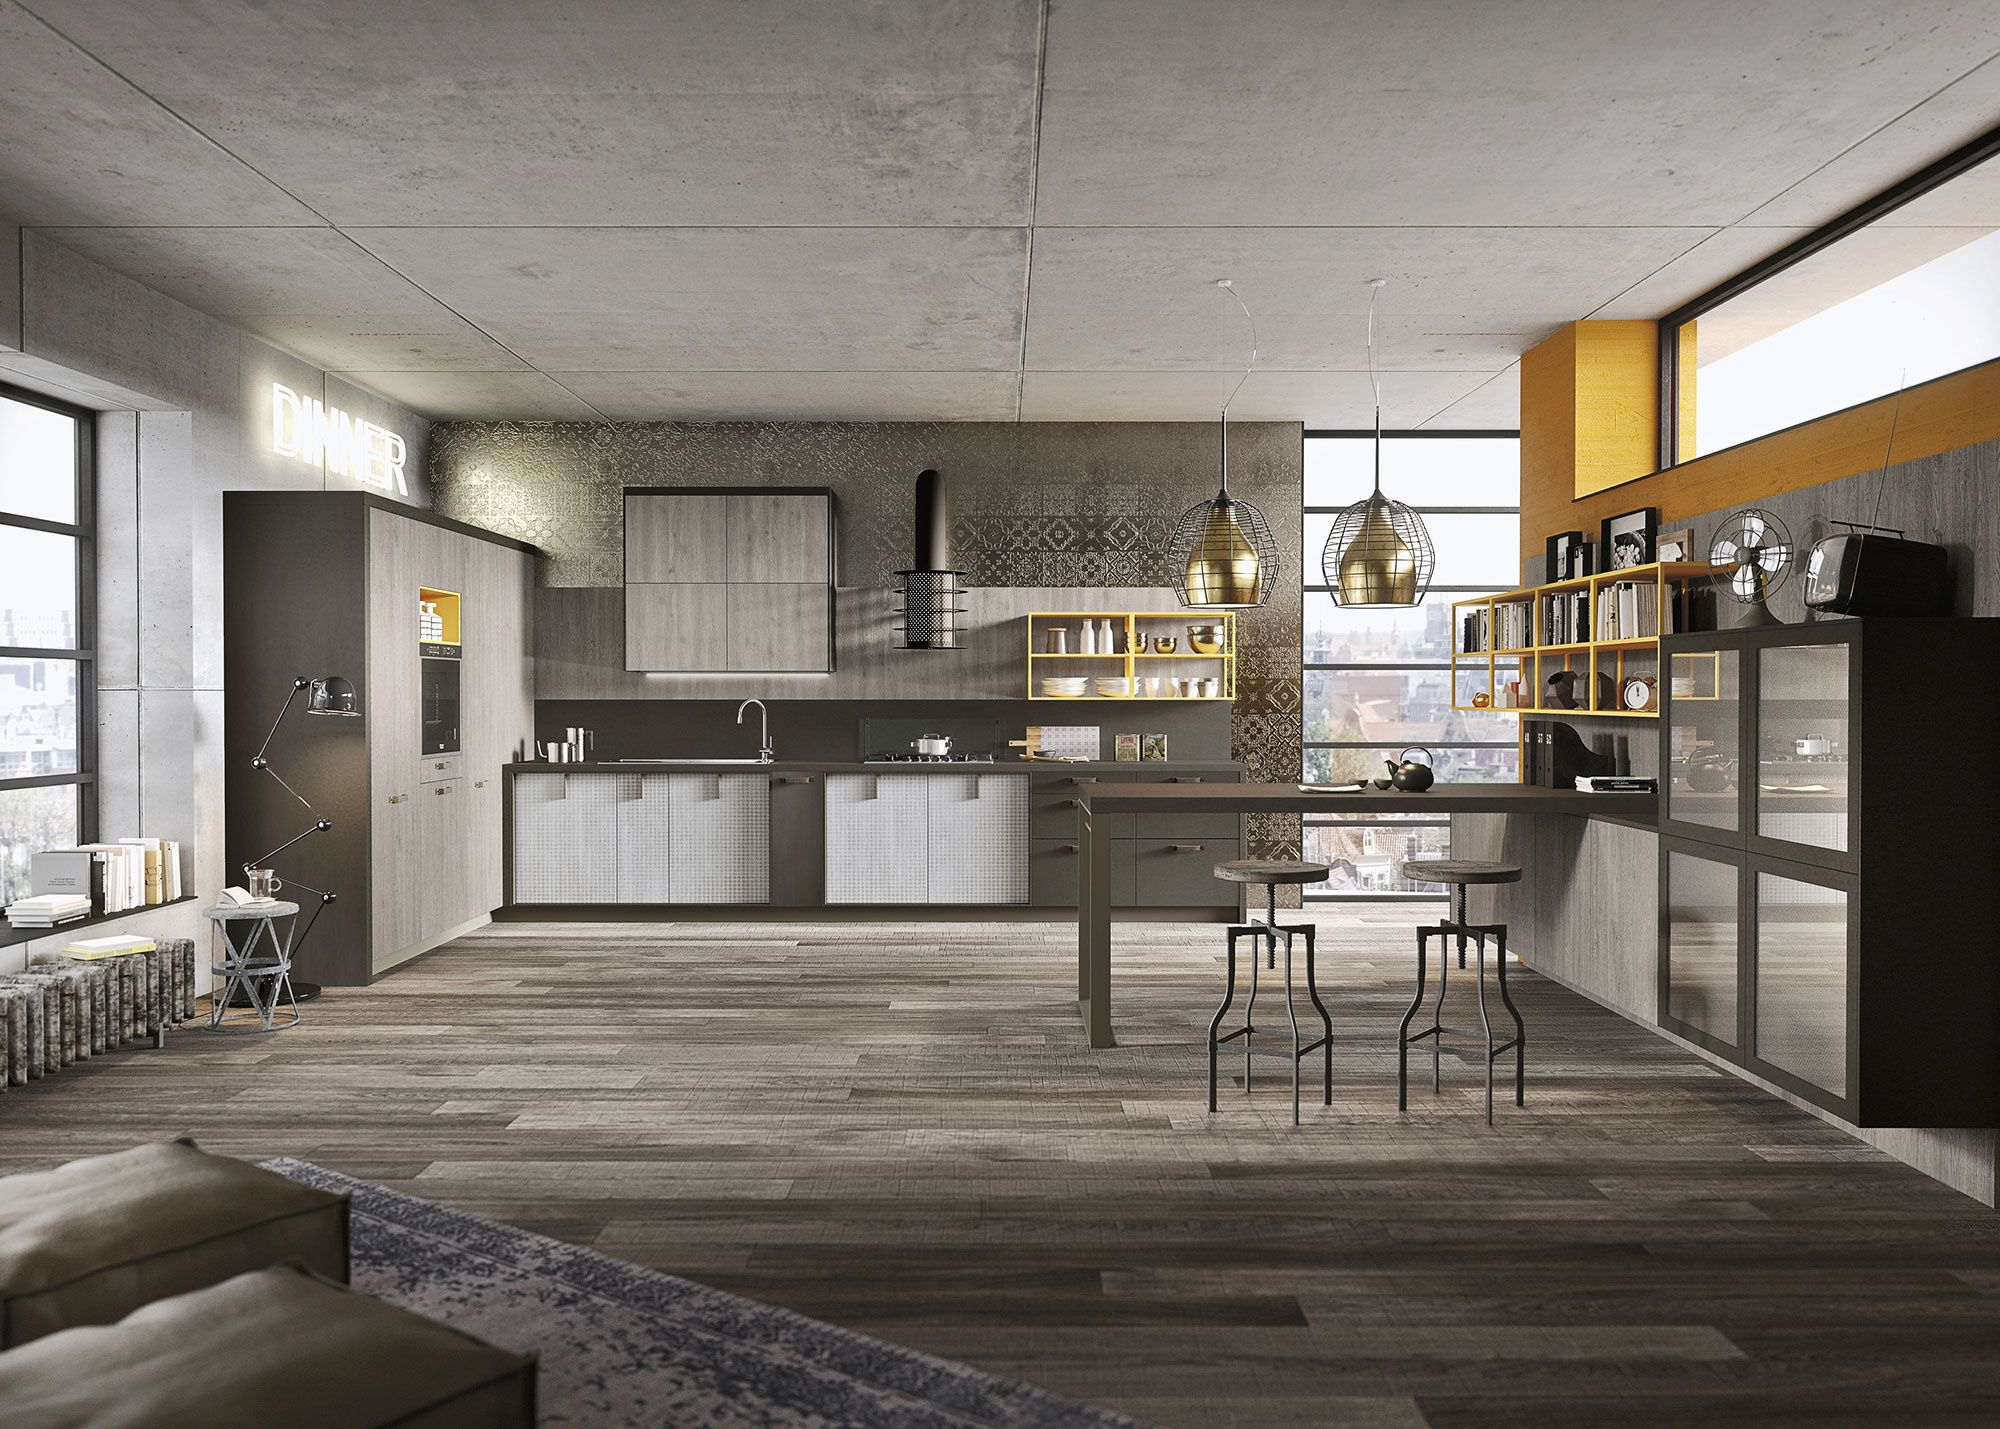 Kitchen Design For Lofts 3 Urban Ideas From Snaidero Industrial Loft Design Loft Kitchen Loft Design